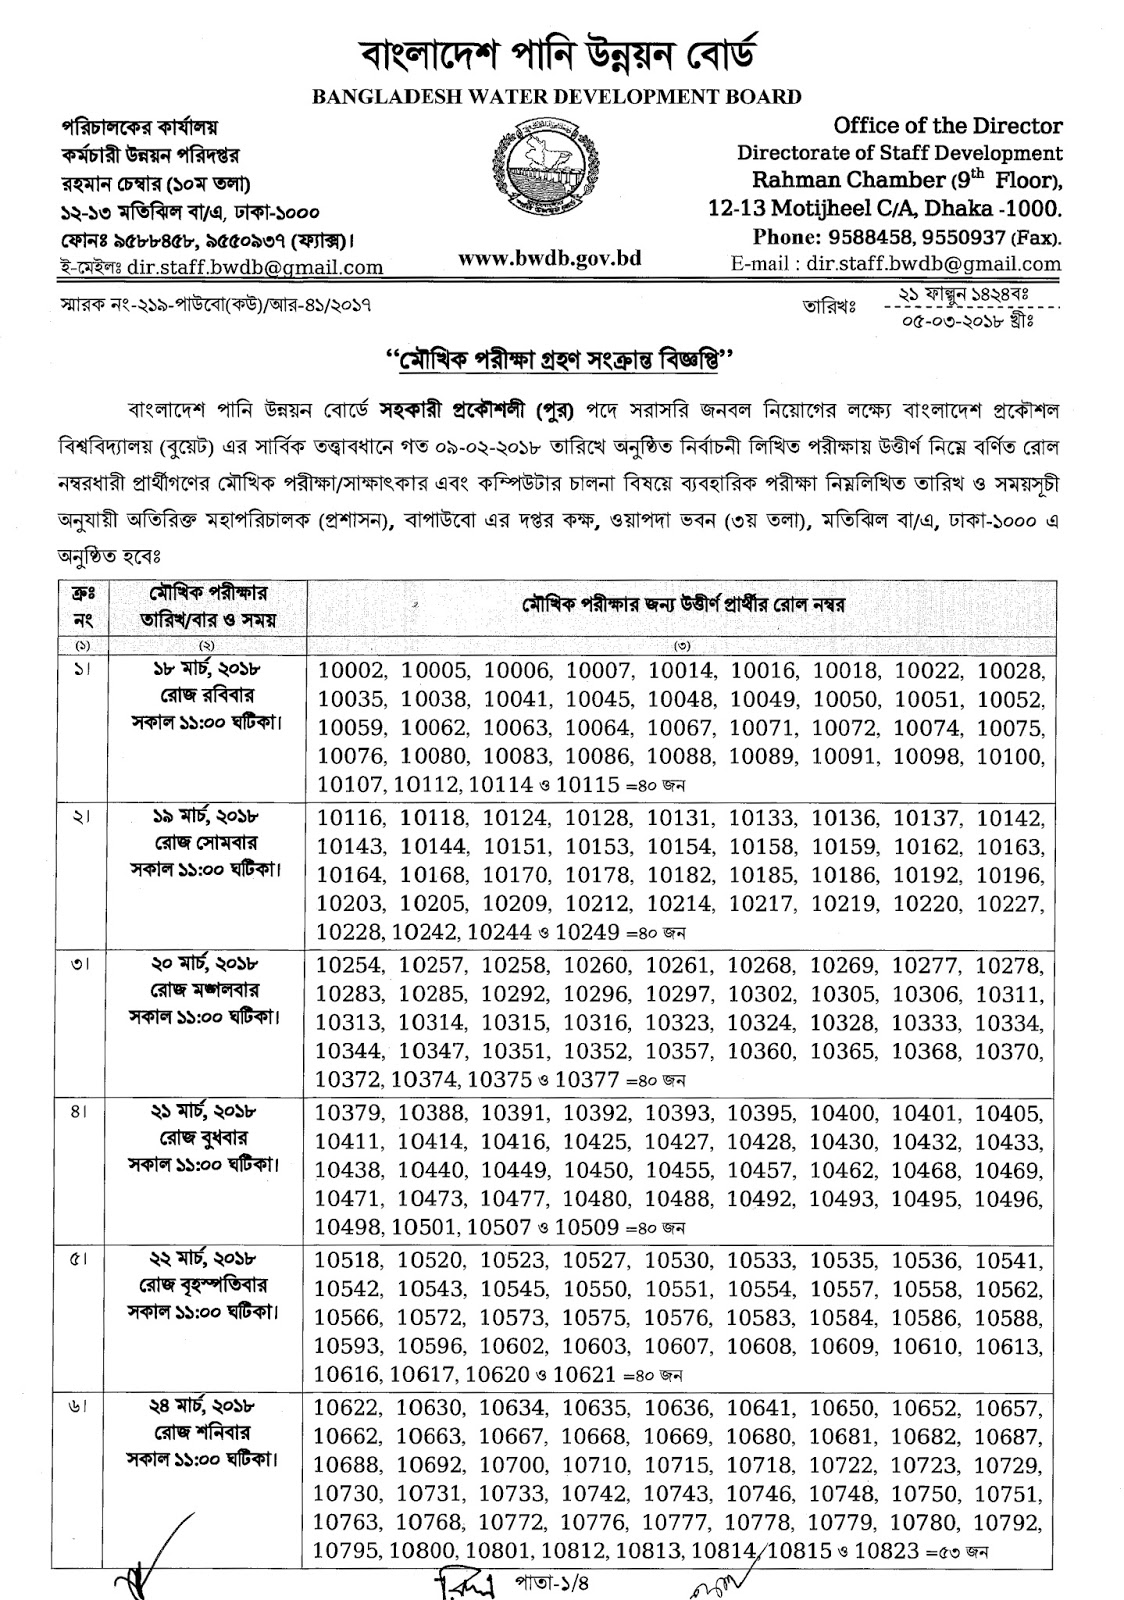 Bangladesh Water Development Board (BWDB) Assistant Engineer (Pur) Recruitment Viva exam date, time and seat plan